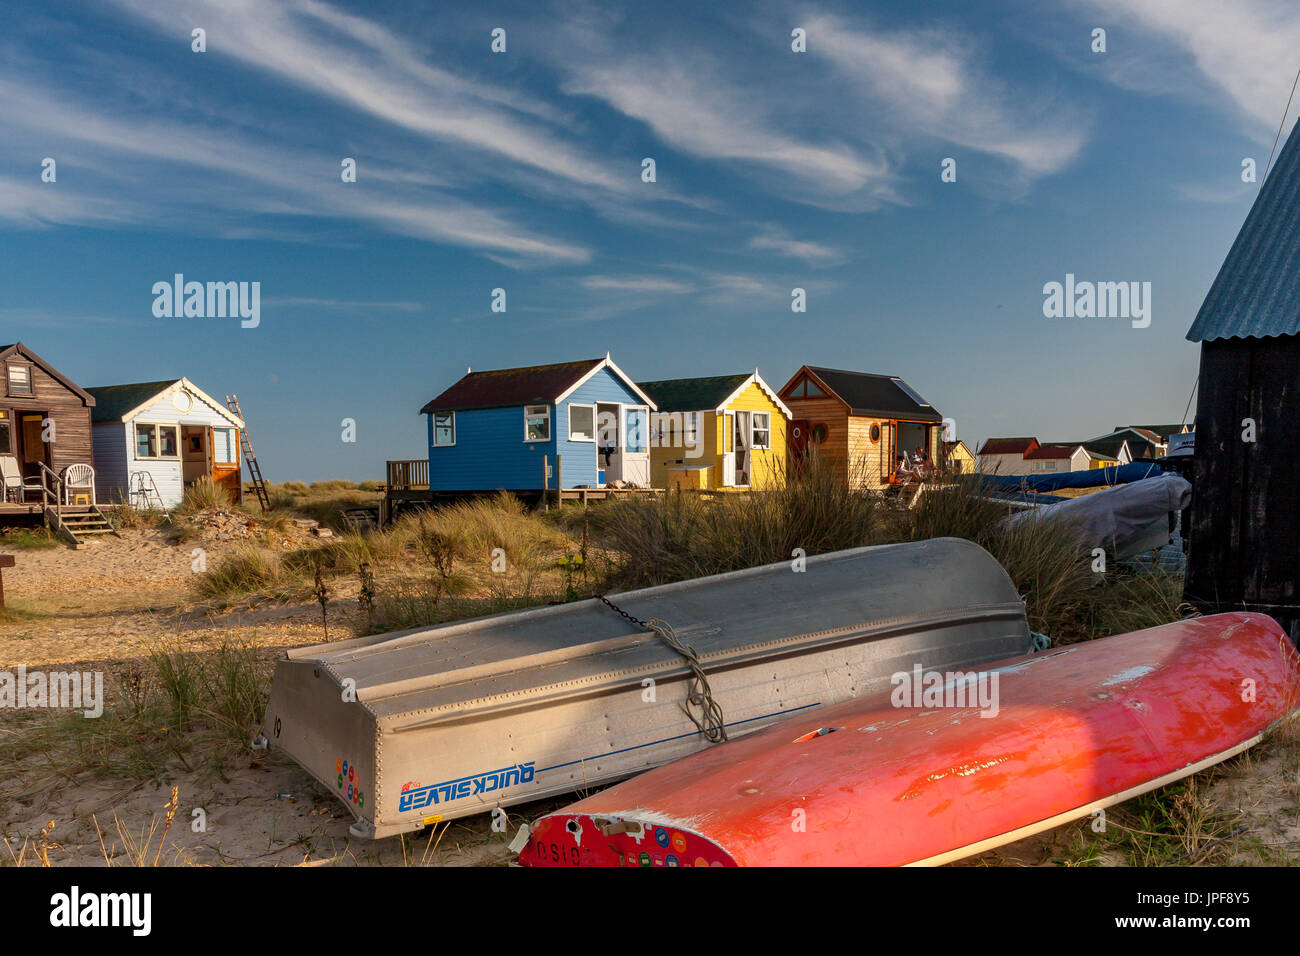 Highly desirable seaside wooden beach huts at Mudeford , Dorset .These highly desirable wooden beach huts are a quintessentially  British tradition . - Stock Image